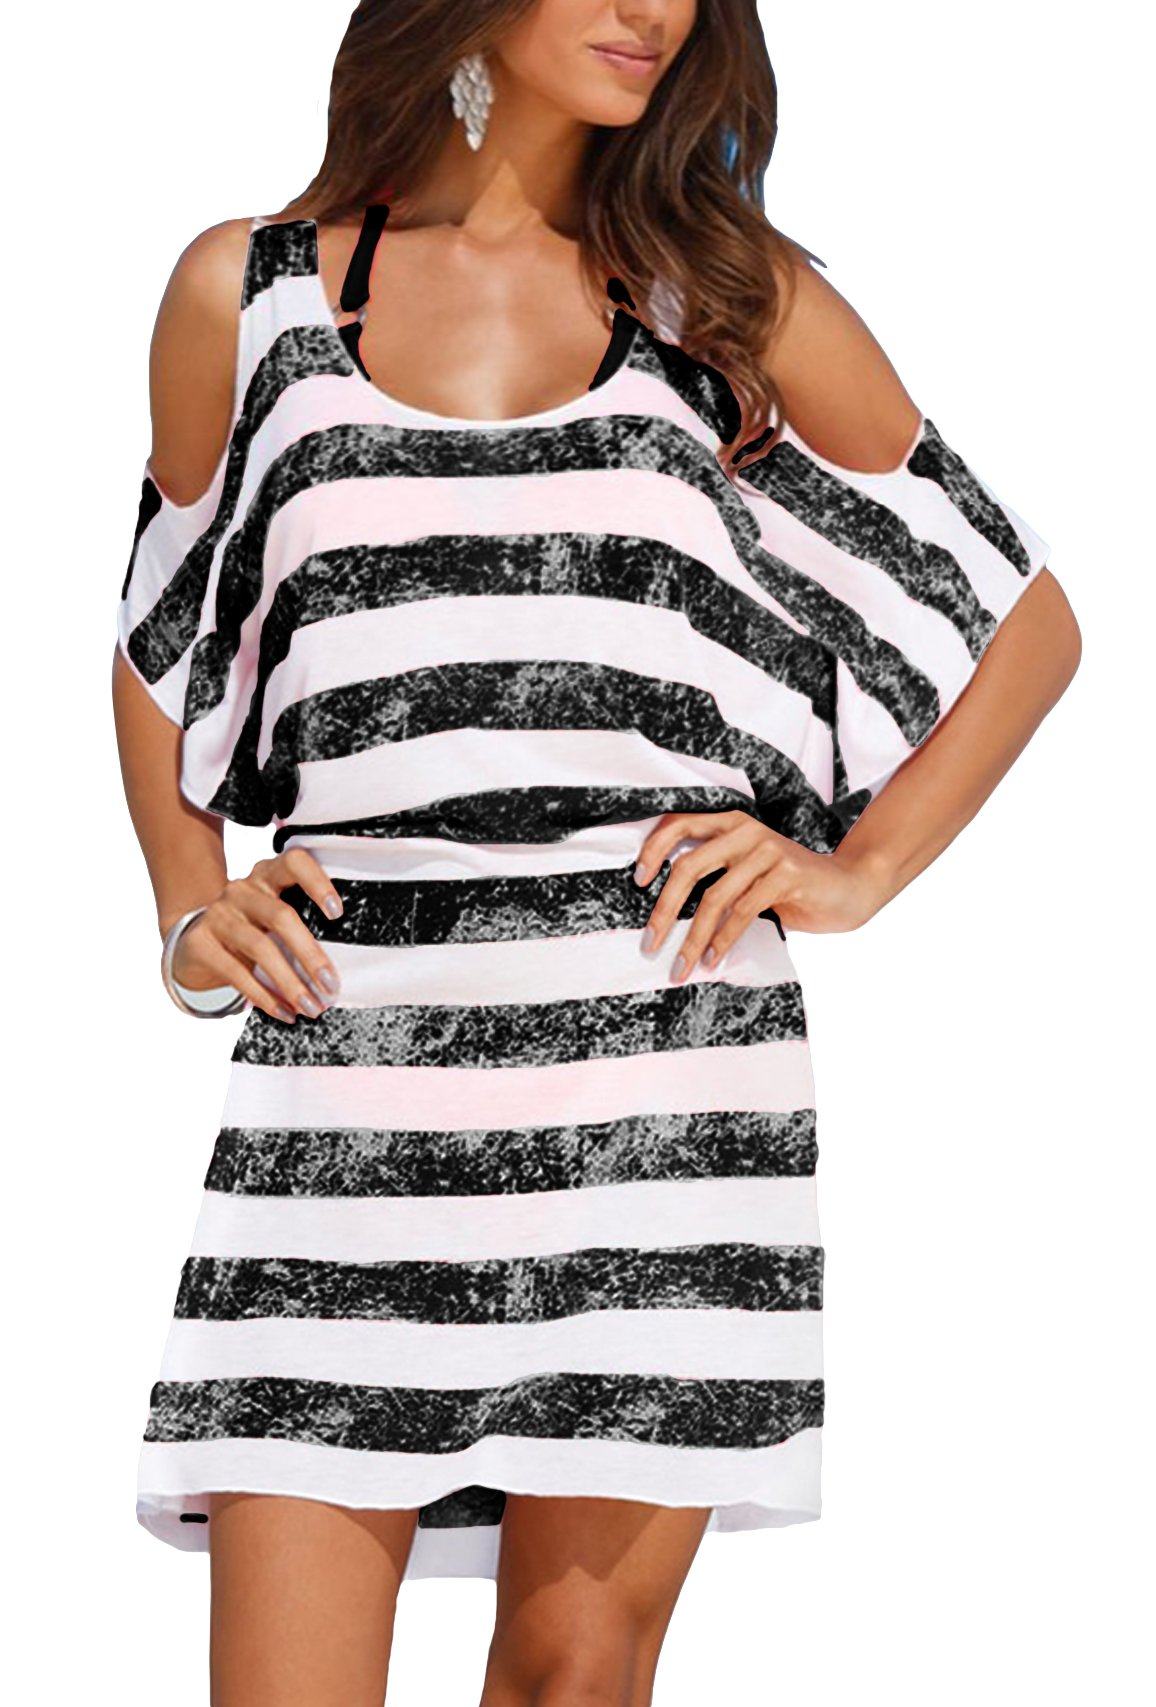 Upopby Women's Striped Loose Kaftan Bikini Swimsuit Beach Cover up Dress Black M